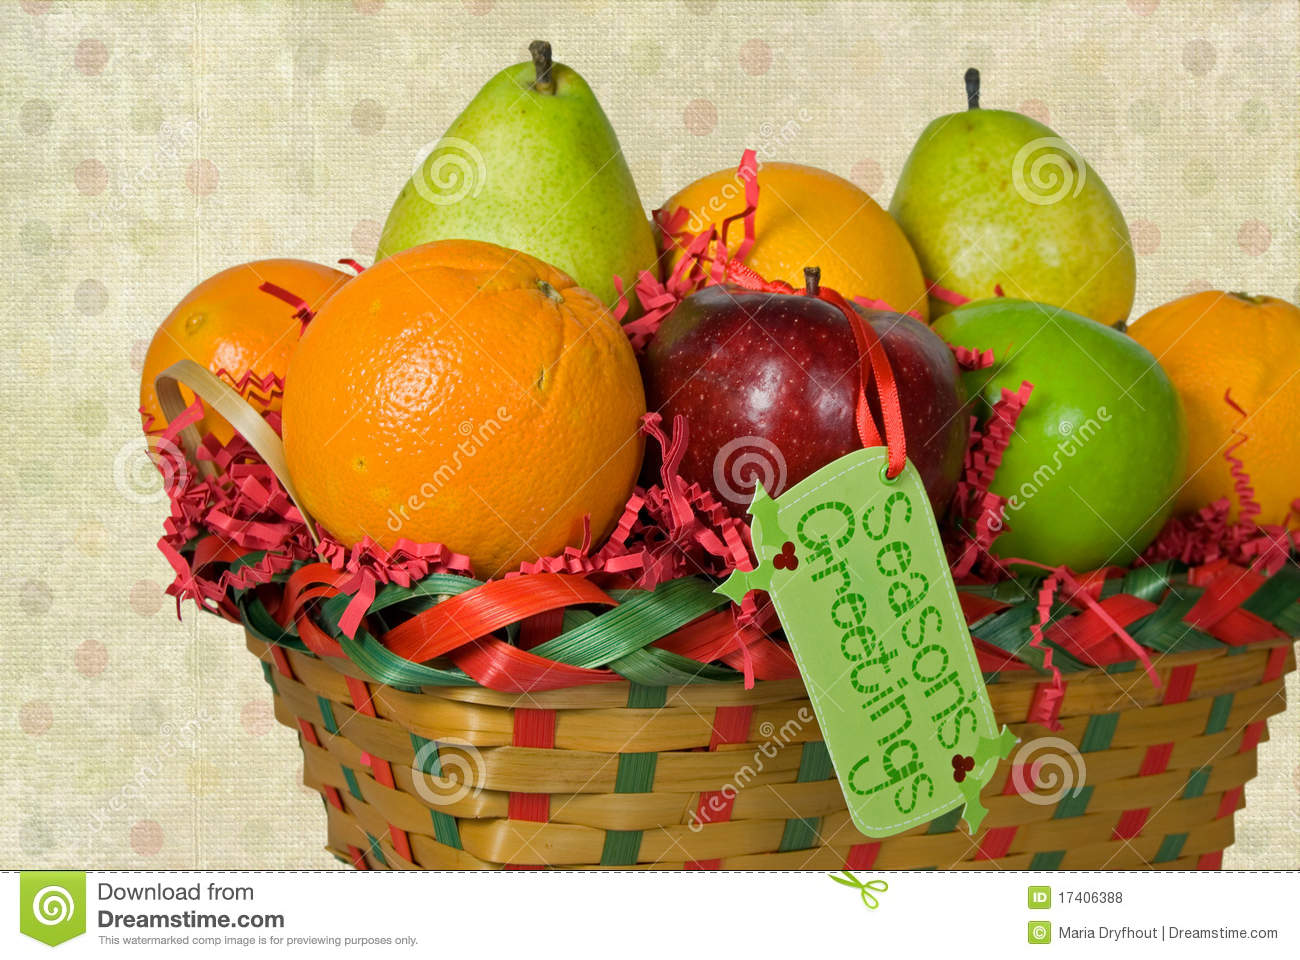 Fresh fruit in christmas fruit basket with tag